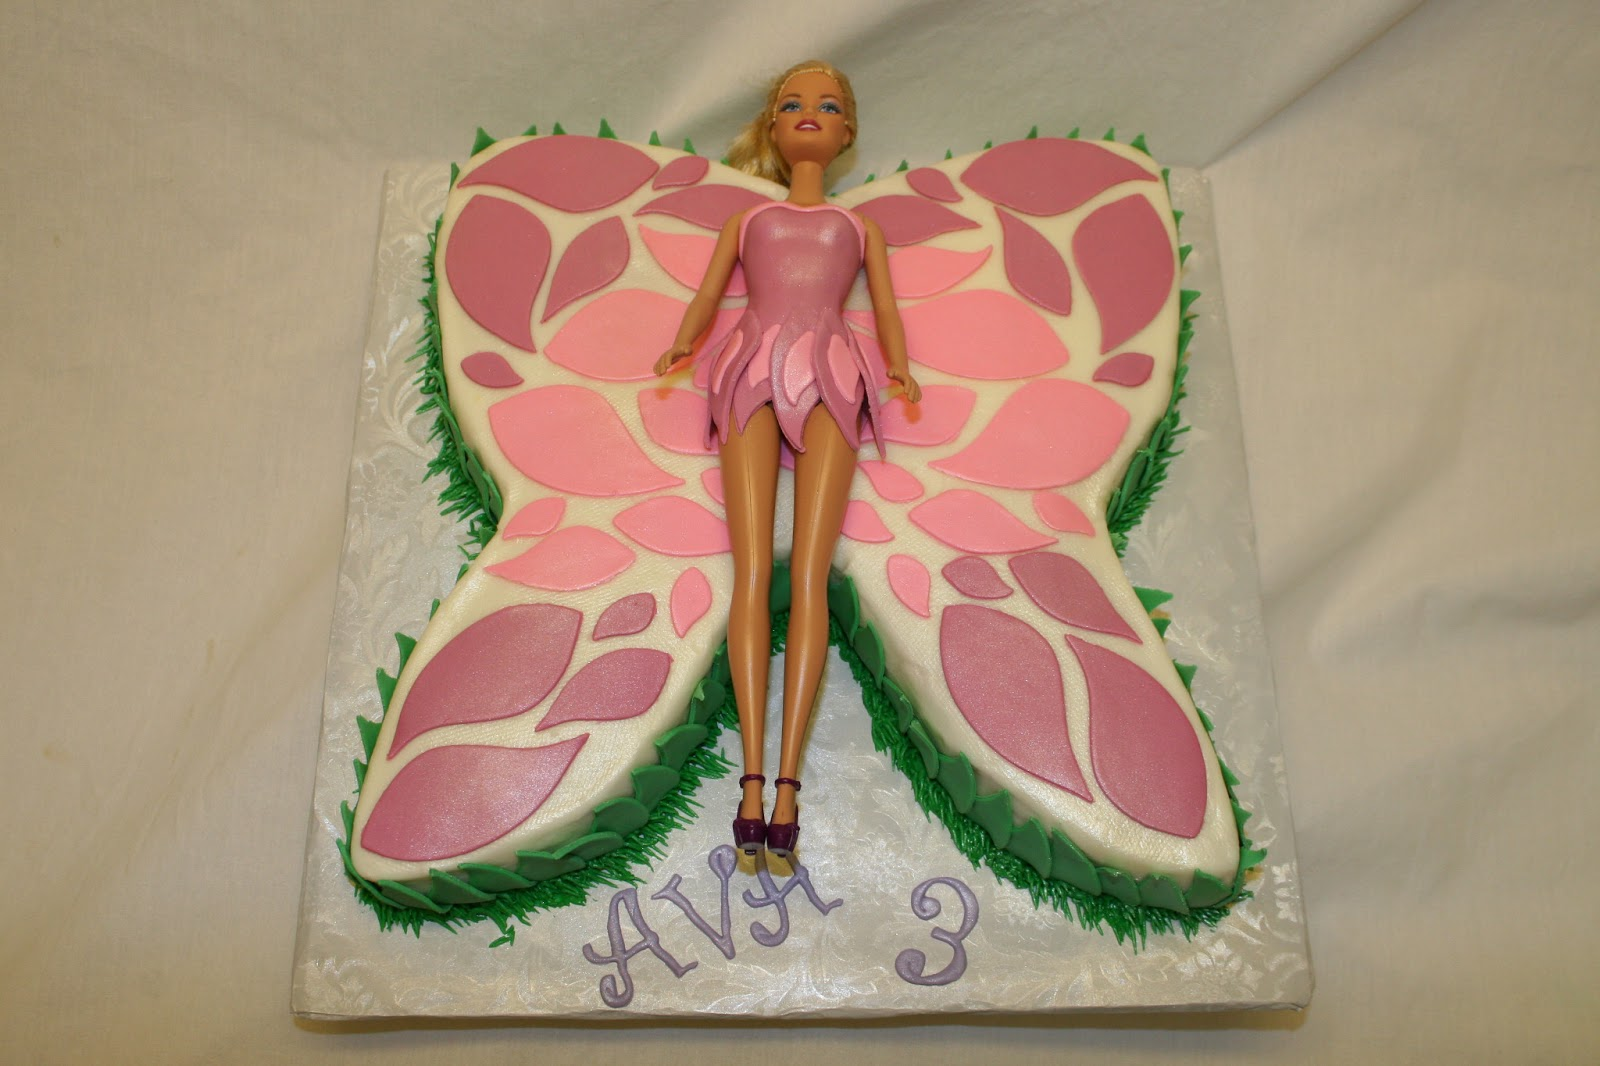 Butterfly Barbie Cake Images : Rachel s Creative Cakes: Butterfly Barbie Cake